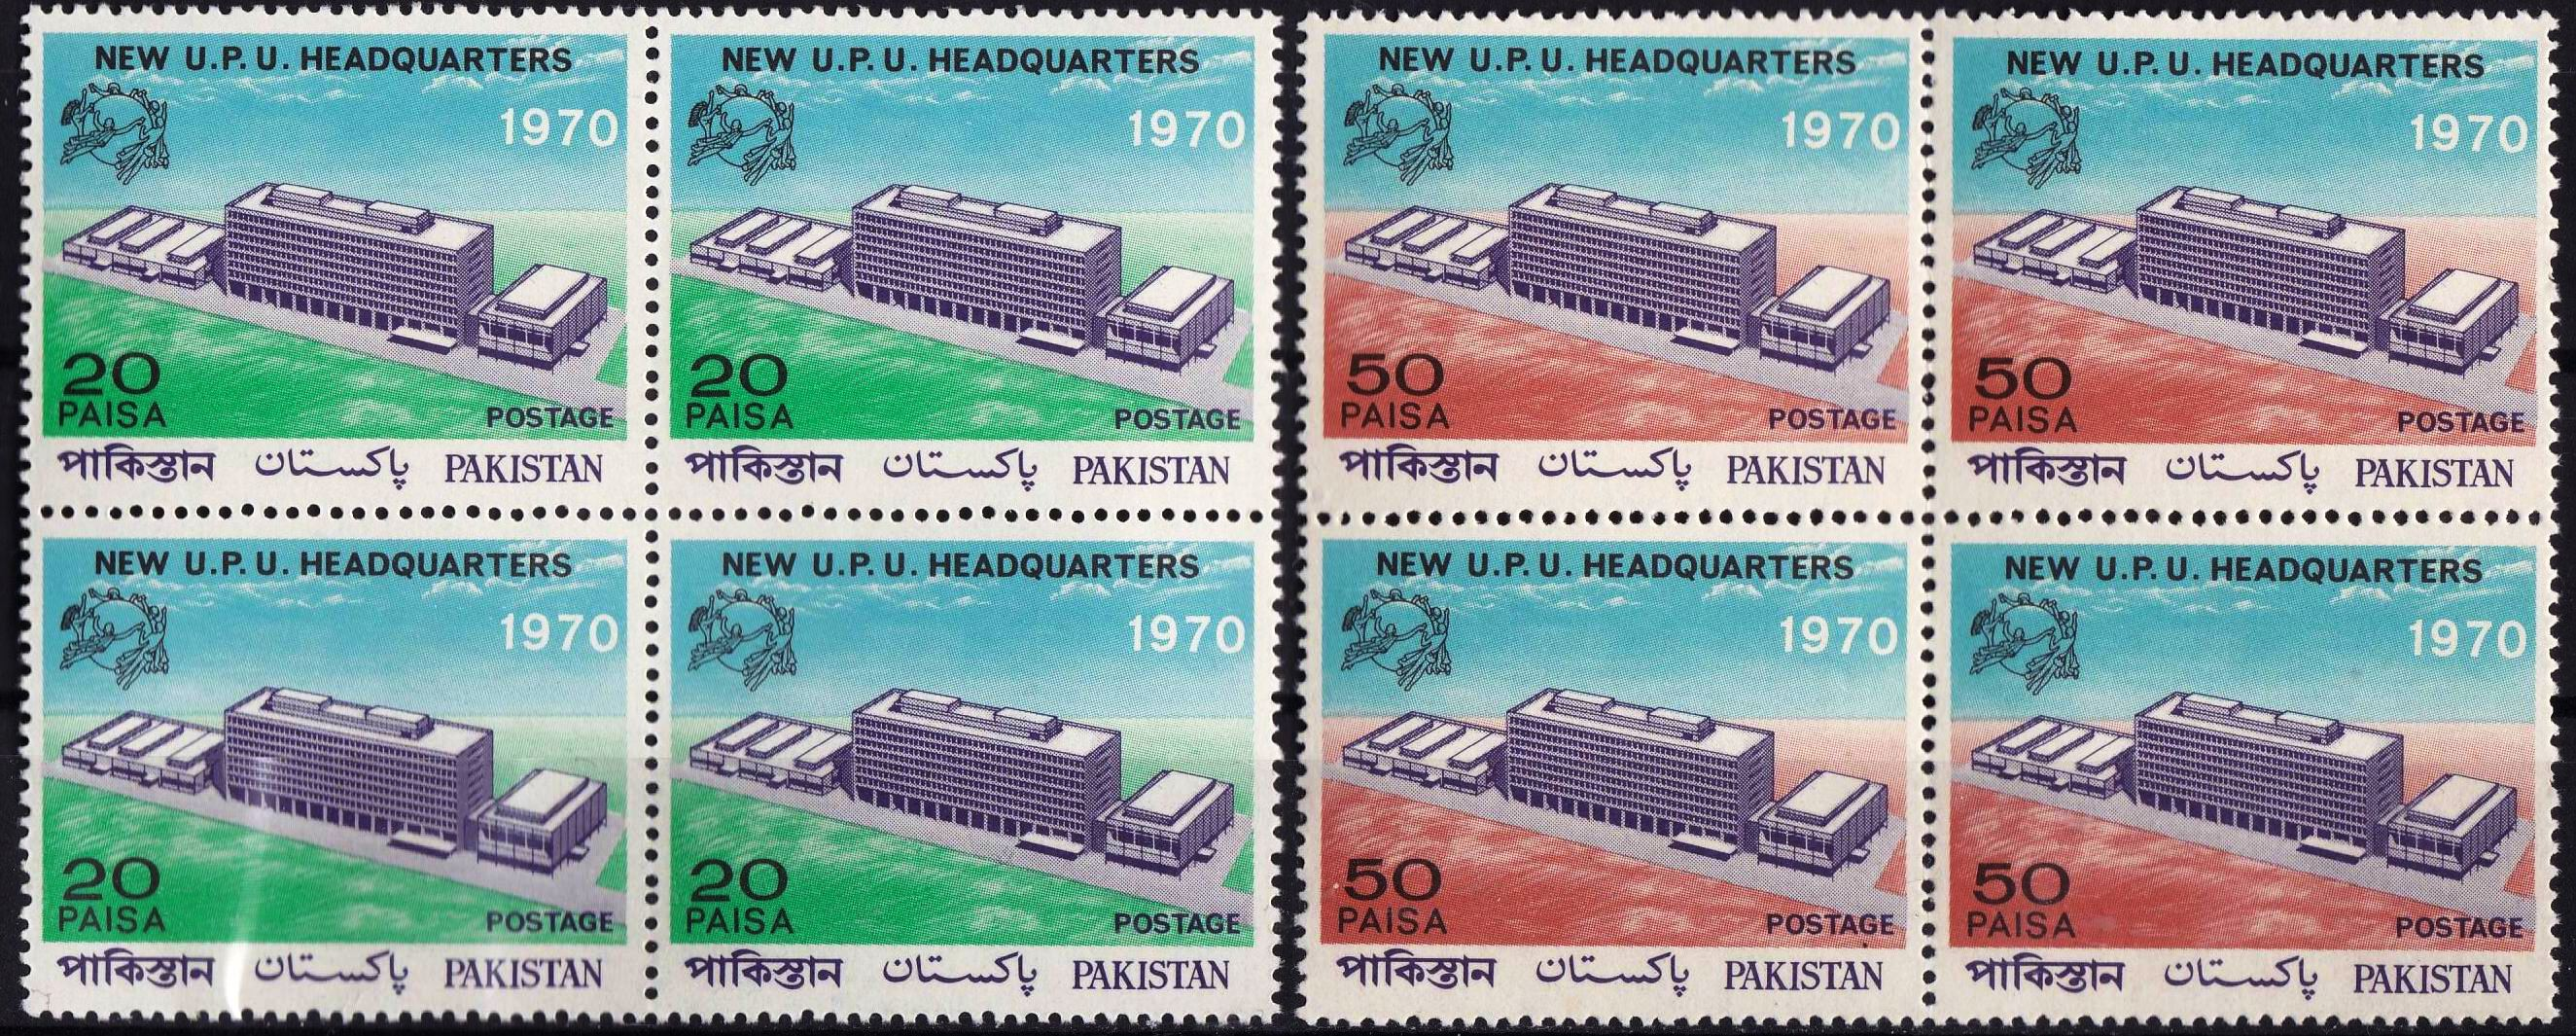 Pakistan Stamps 1970 New Upu Hq In Berne